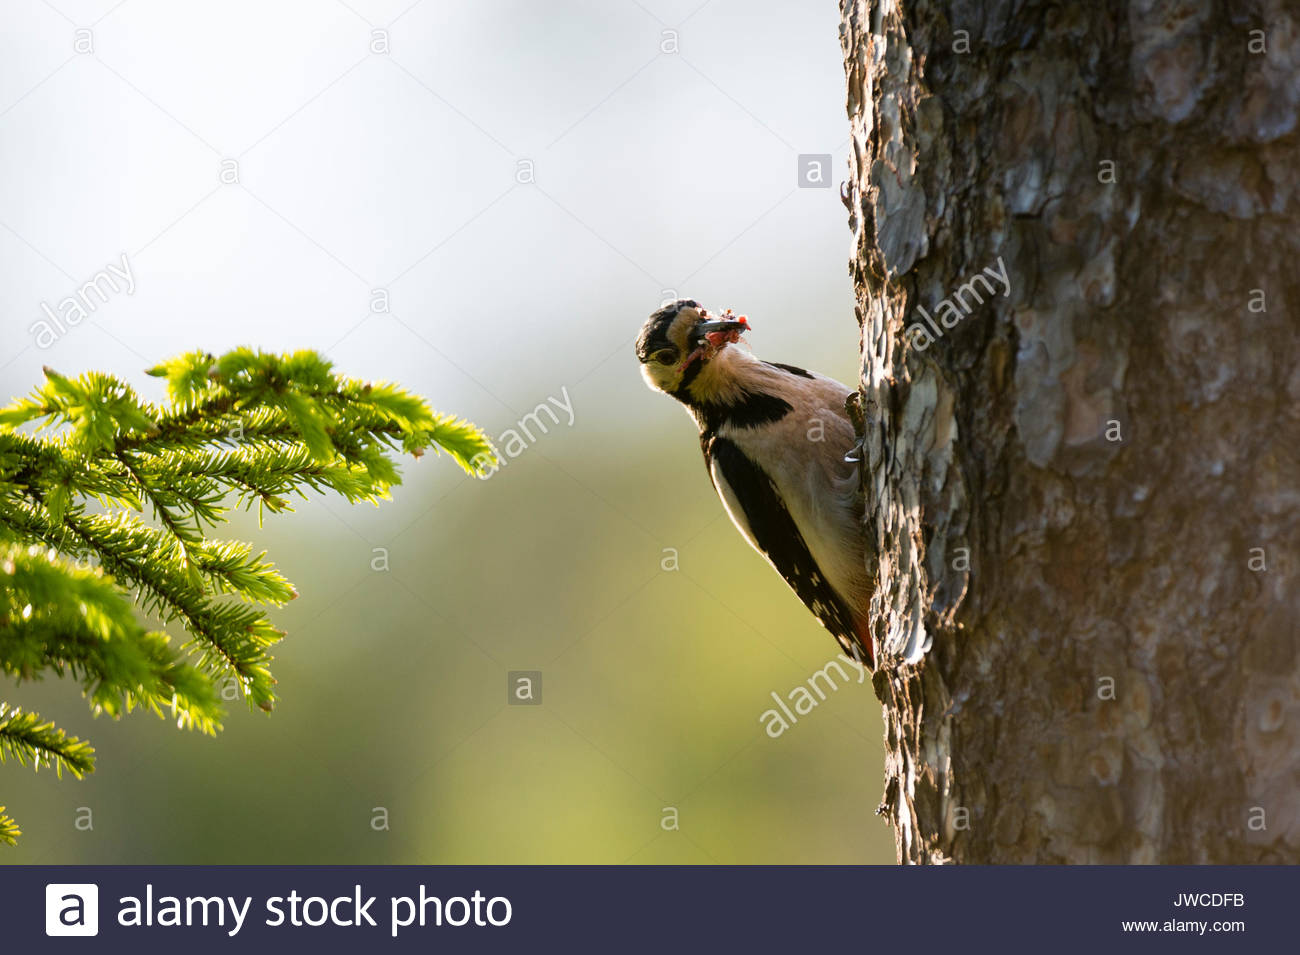 A great spotted woodpecker,Dendrocopos major,on a pine tree trunk. - Stock Image